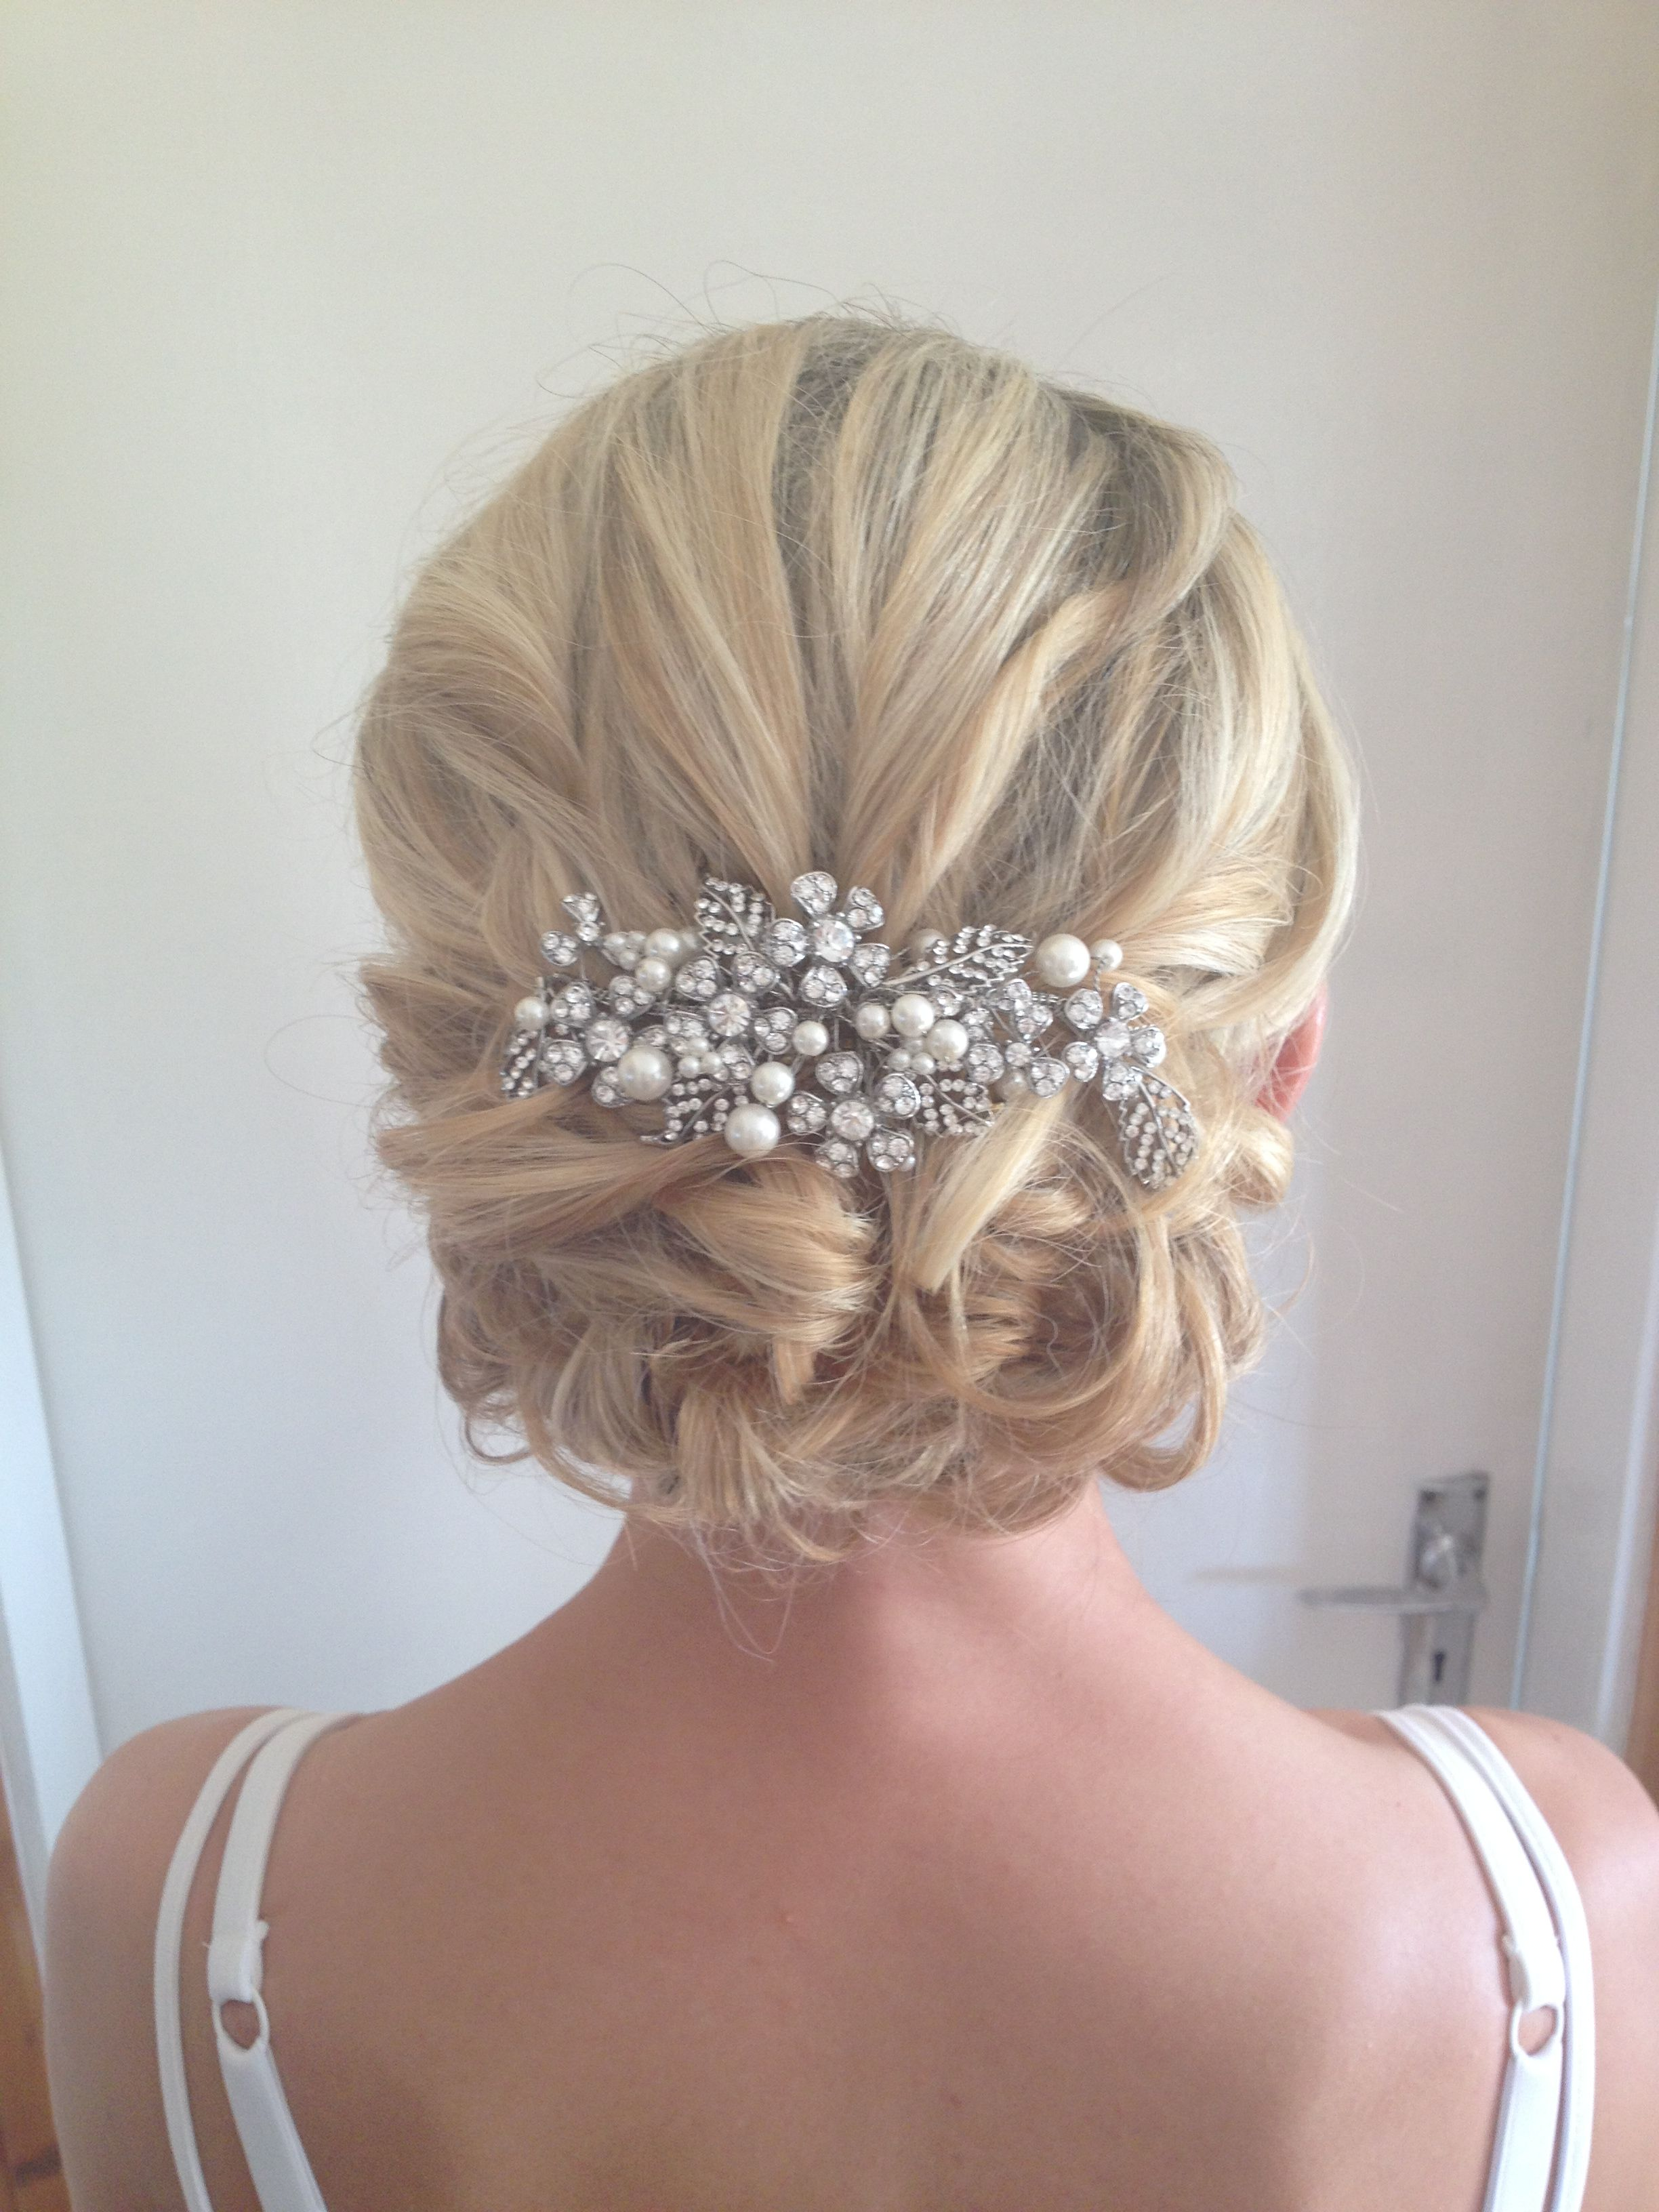 Wedding Upstyles With Veil Example Of How I Will Wear My Hair With Comb Or Flowers Veil Will Attach Above Gat Wedding Hair Trends Bride Hairstyles Bridal Hair